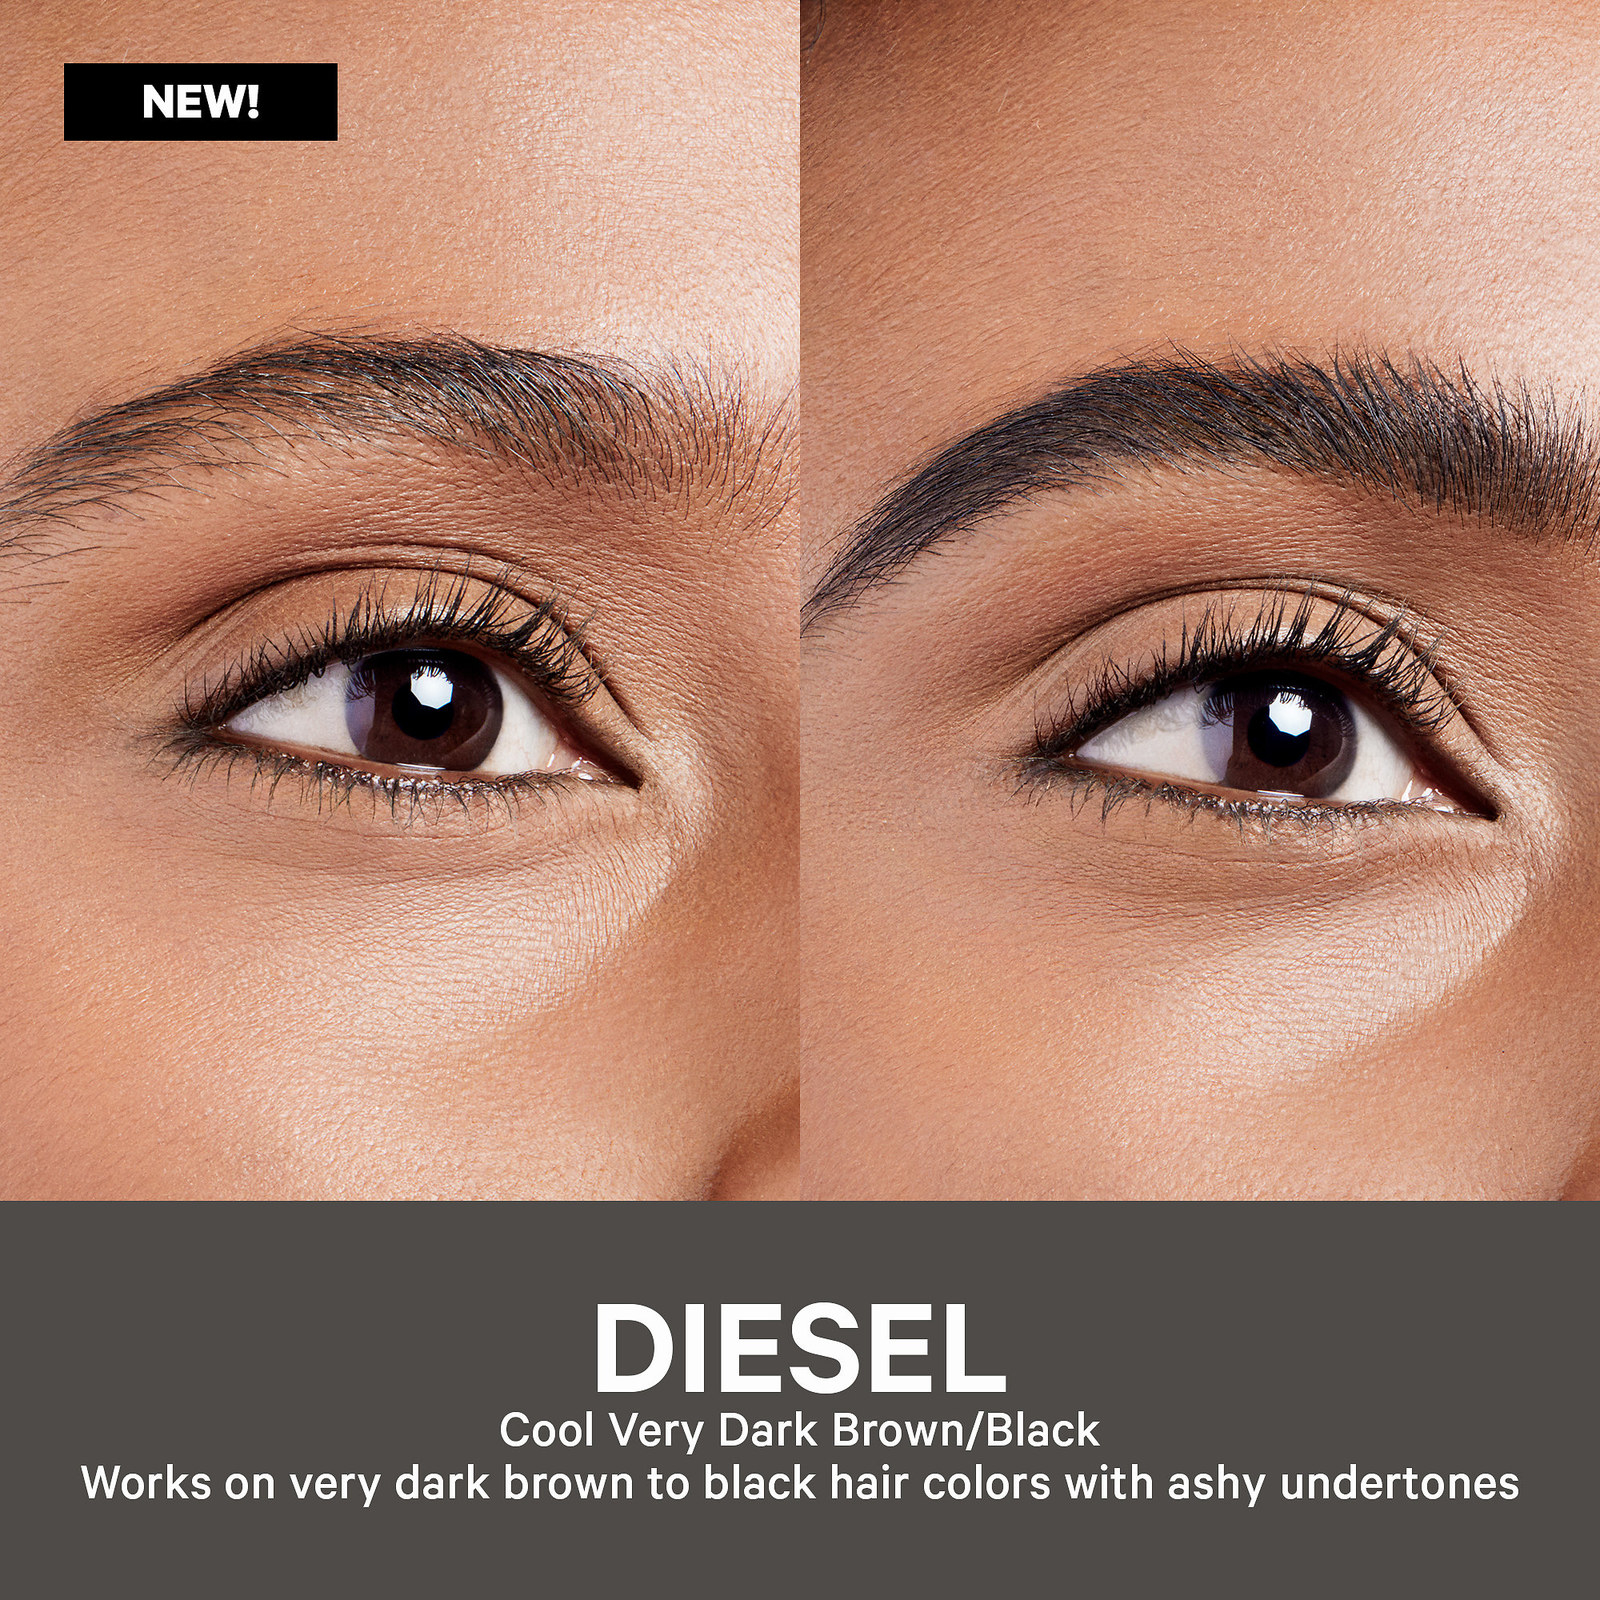 Model showing the before/after of the gel, in shade diesel, which works on very dark brown to black hairs